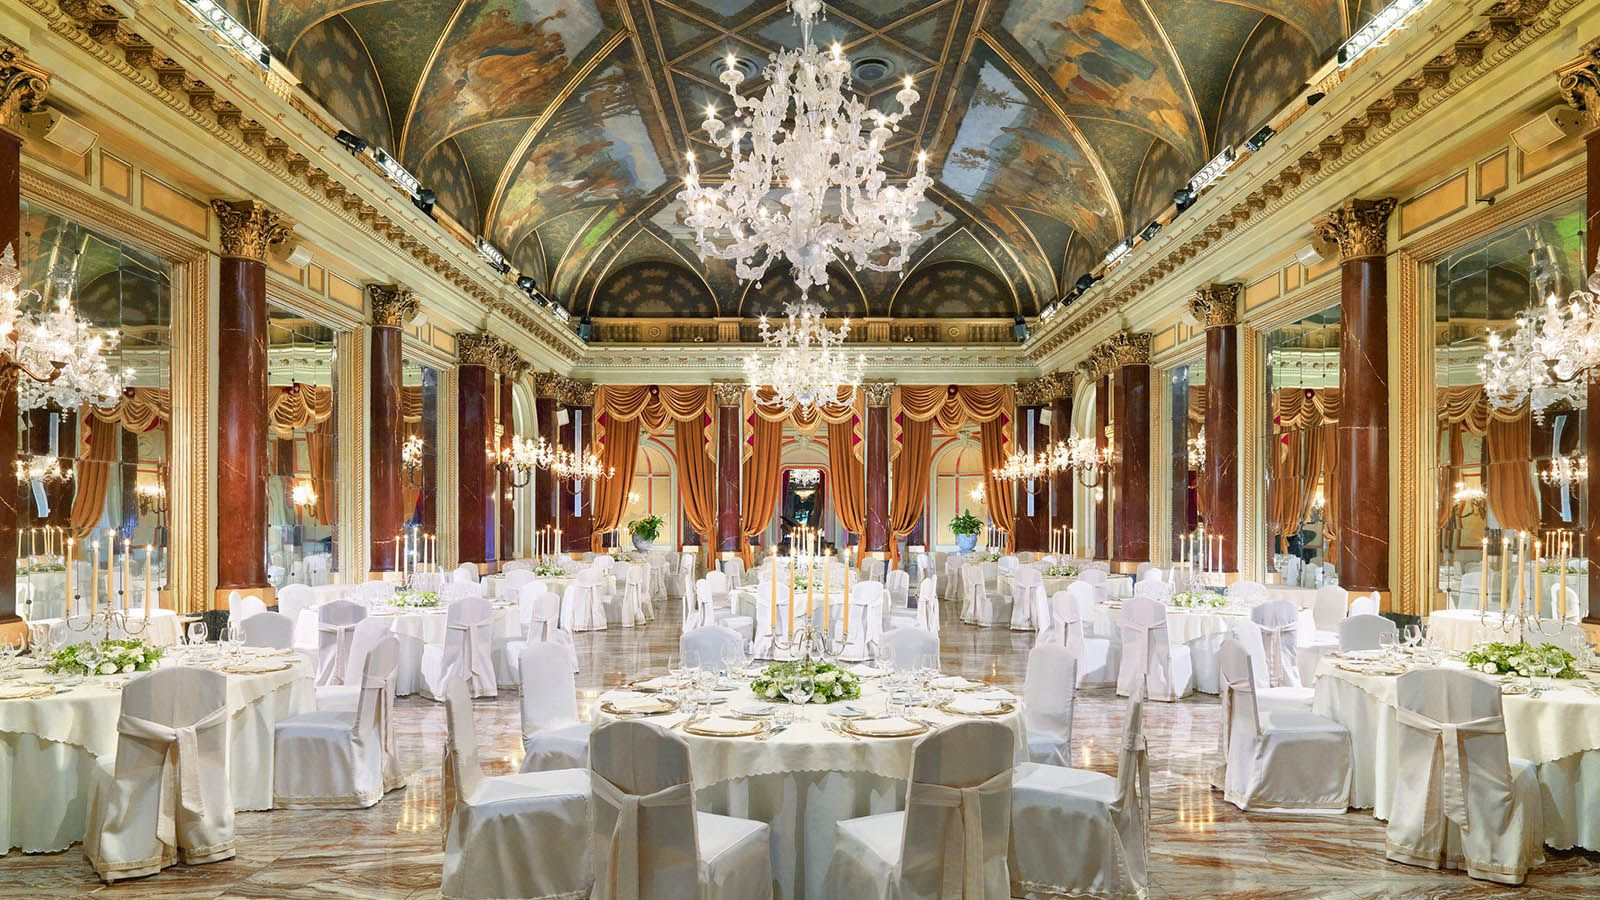 The Ritz Ballroom at The St. Regis Rome